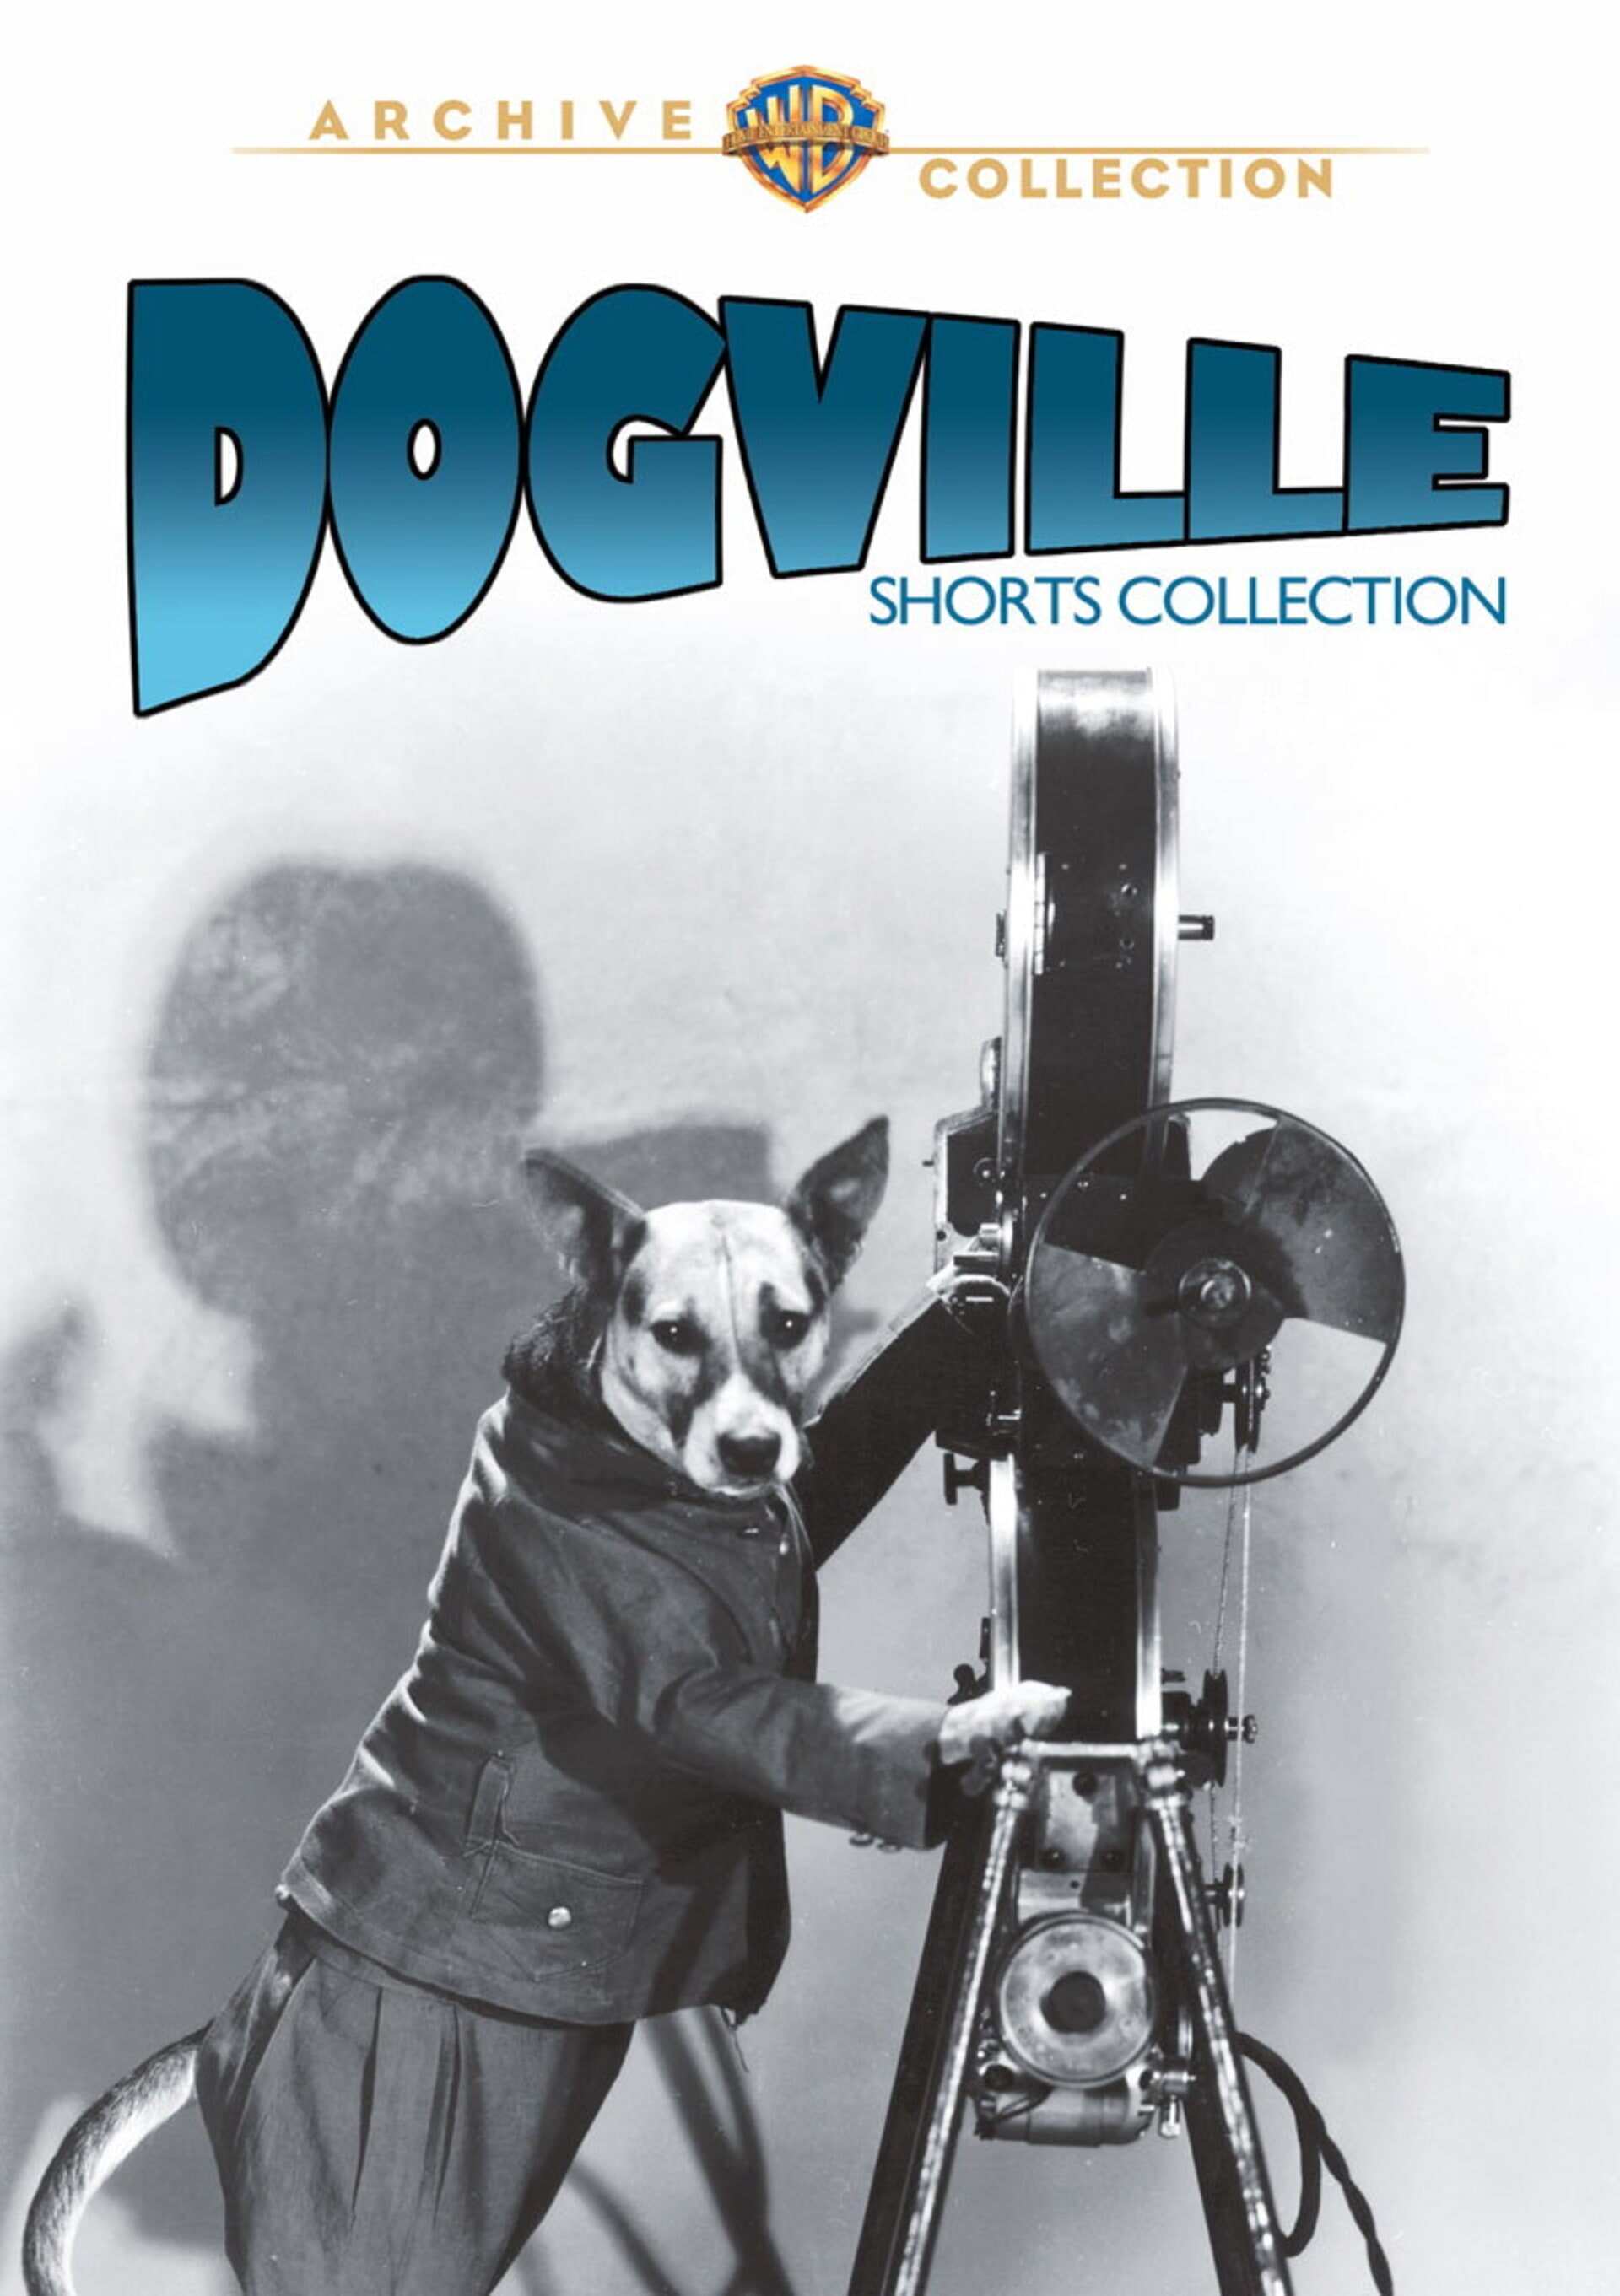 Dogville Shorts (1930-31) - Poster 1